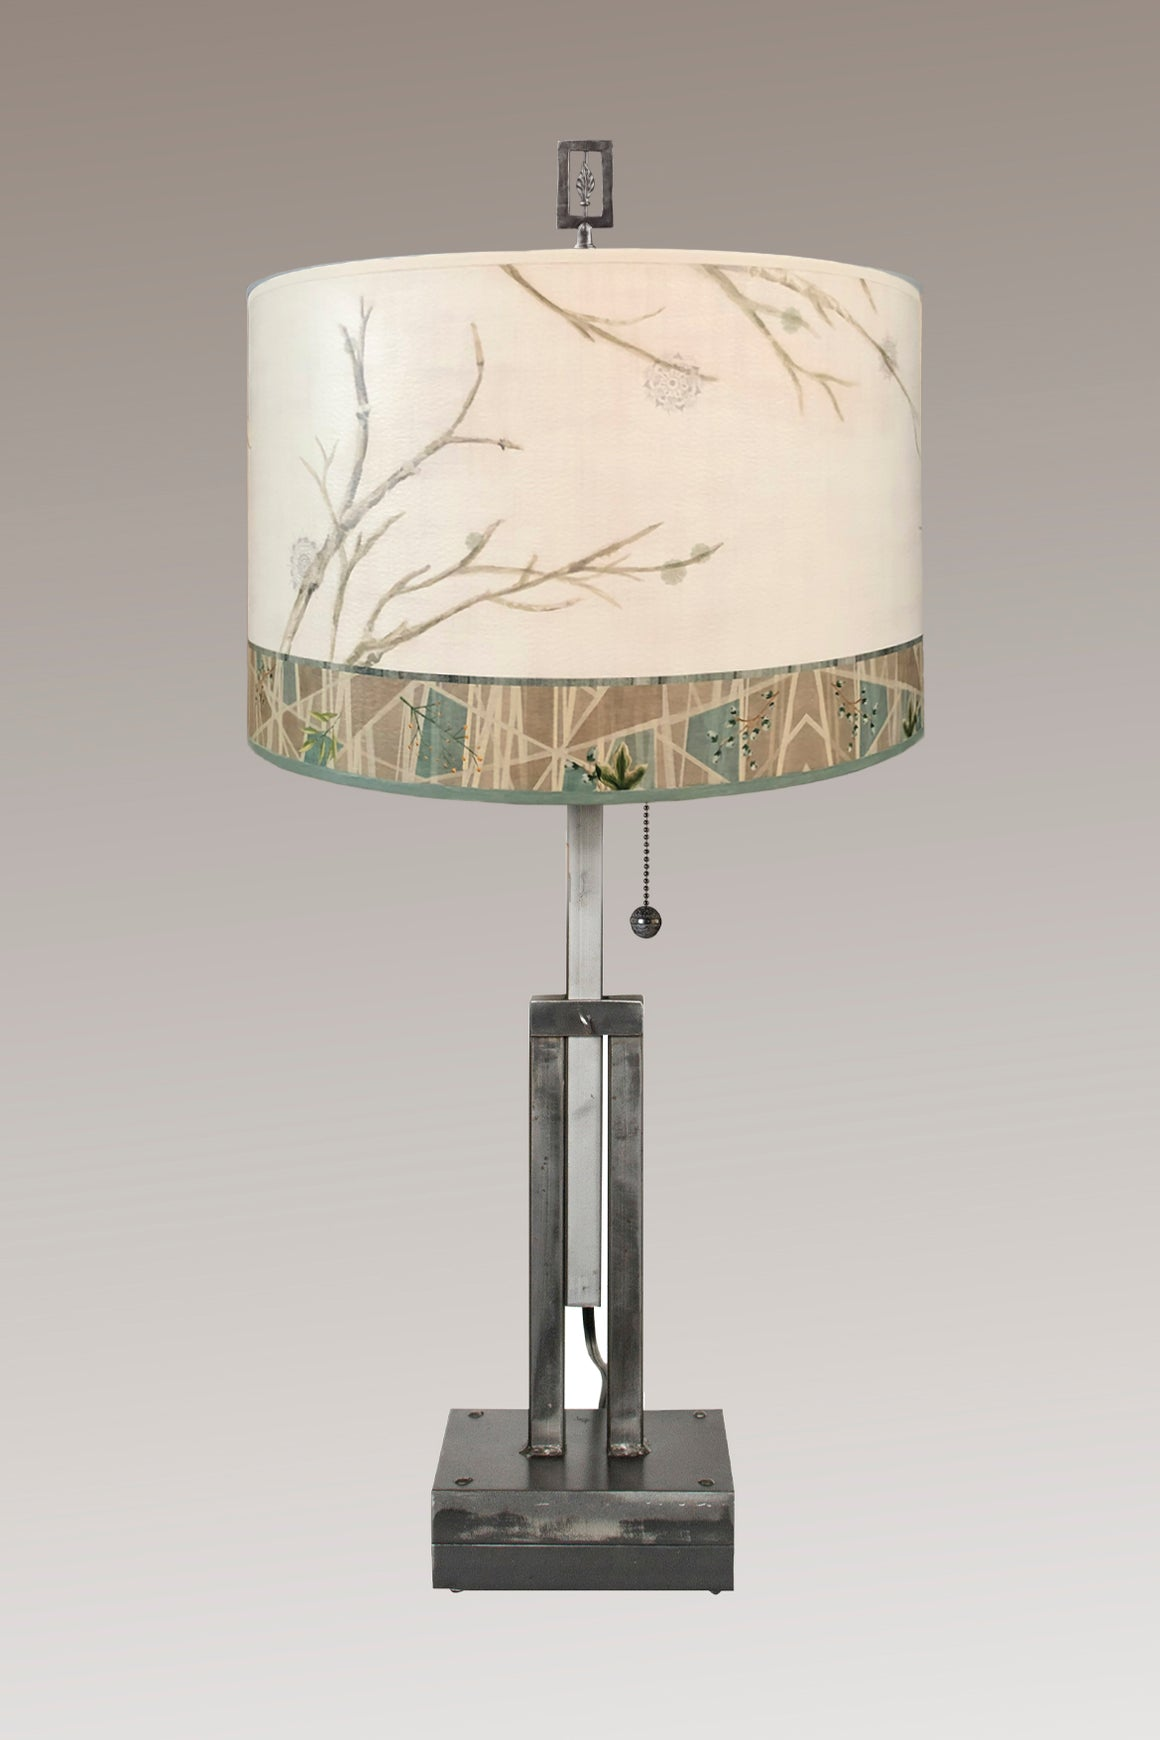 Adjustable-Height Steel Table Lamp with Large Drum Shade in Prism Branch